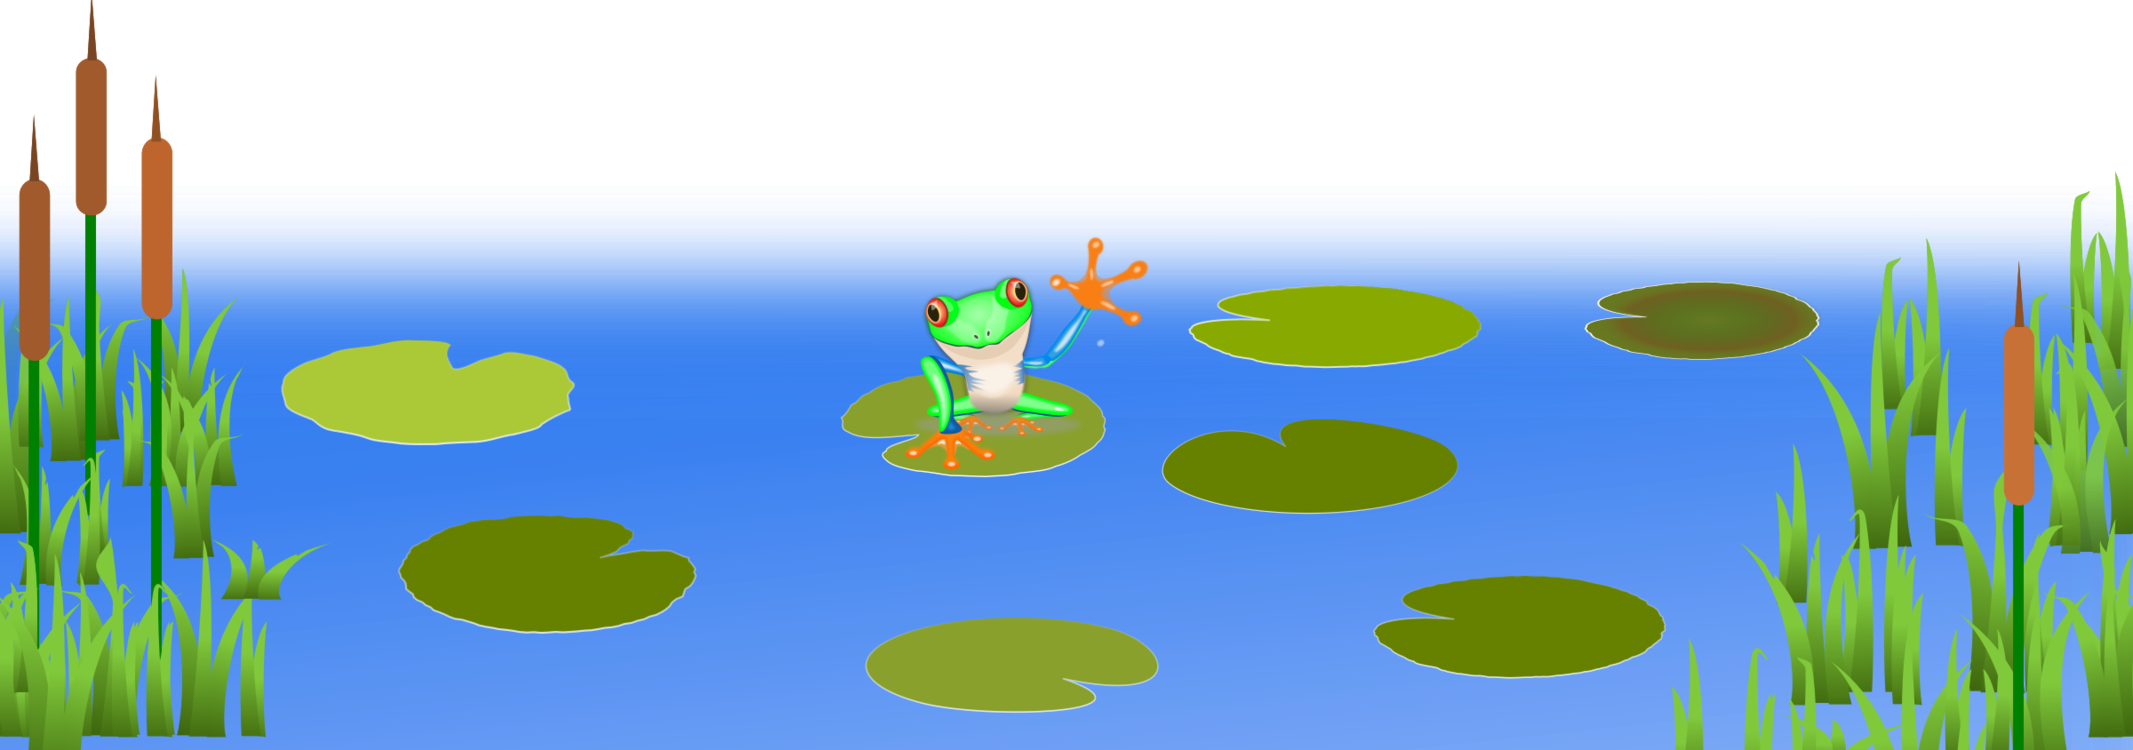 Lilly Pad Png Pond Transparent Lily Pad Clipart Pond With Lily Pads Clipart 717268 Vippng